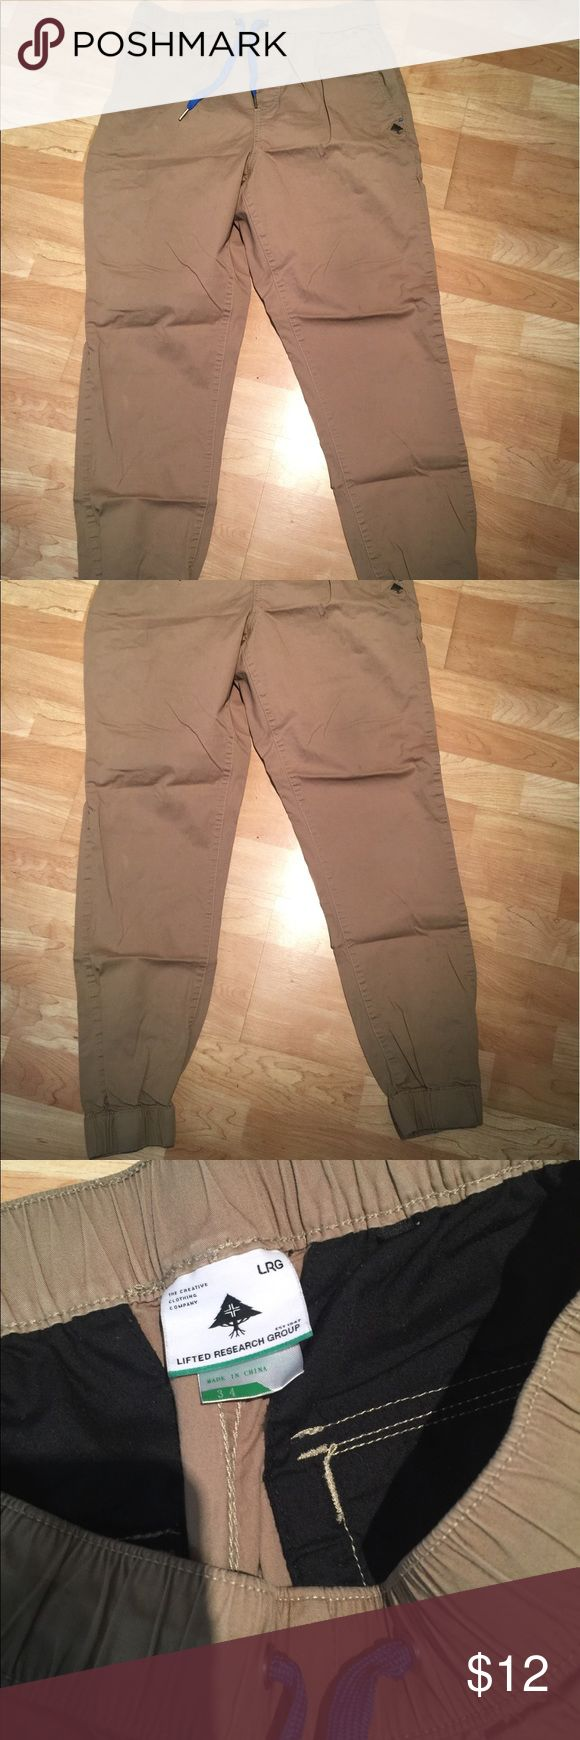 Lrg men's 34 joggers Lrg men's 34 joggers. Small stains as shown. Bundle and save. Lrg Pants Sweatpants & Joggers